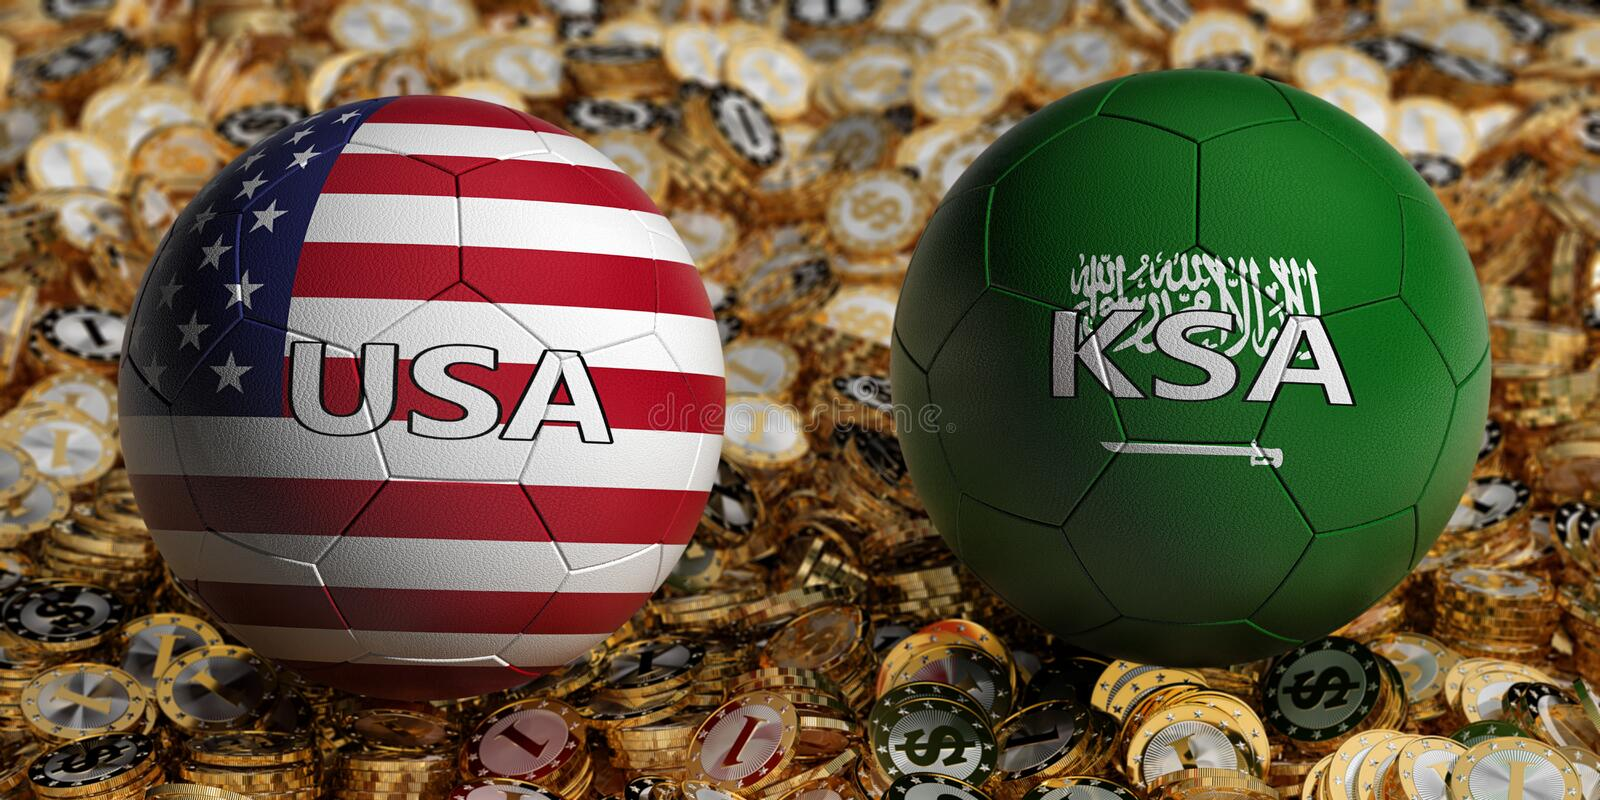 Saudi Arabia vs. USA Soccer Match - Soccer balls in Saudi Arabia and USA national colors on a bed of golden dollar coins. 3D Rendering royalty free stock photo